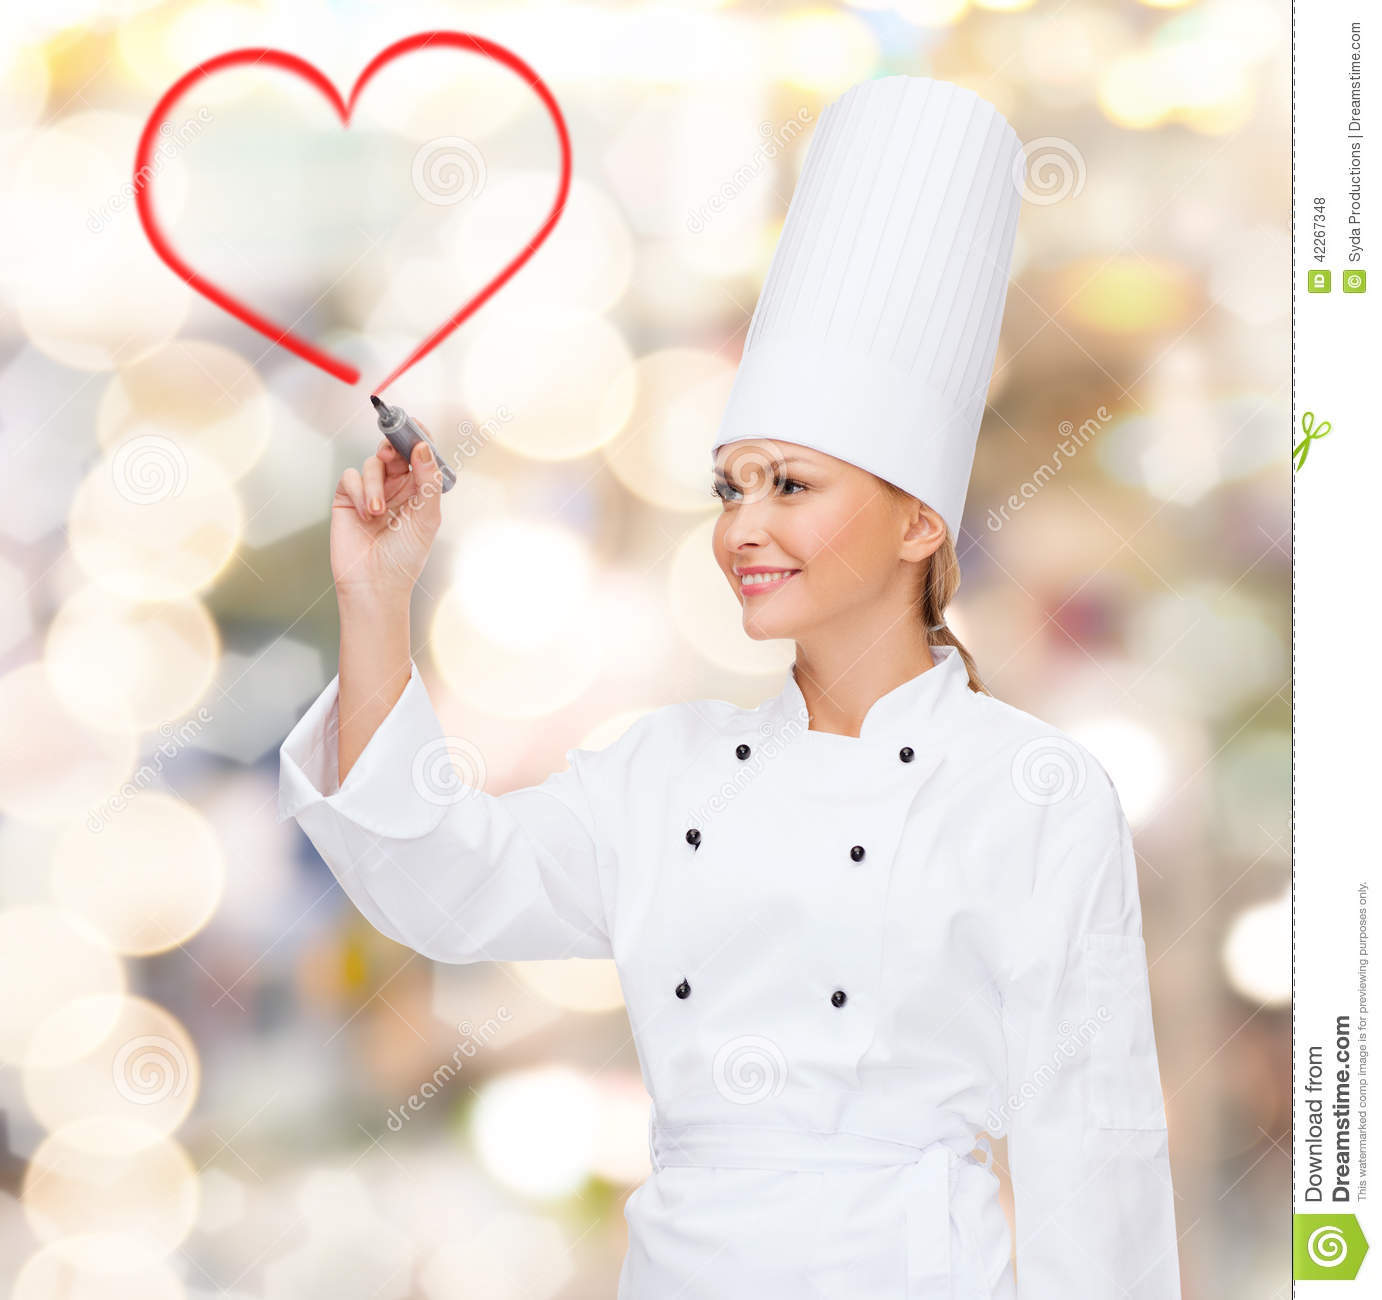 Smiling female chef drawing red heart on air